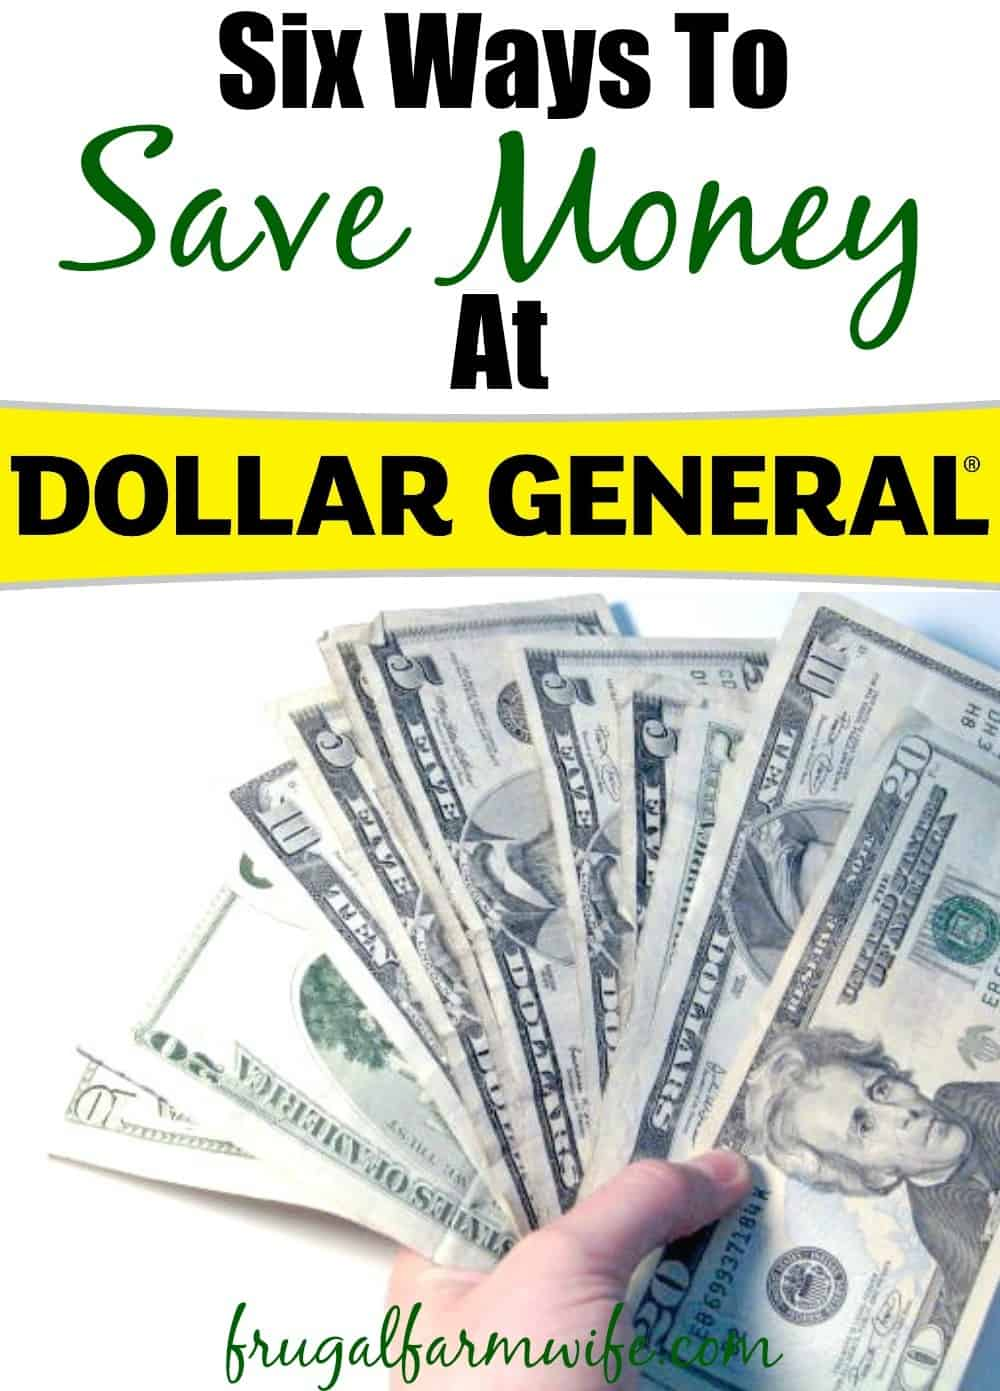 6 Ways To Create A Bohemian California Look No Matter What: Six Ways To Save At Dollar General